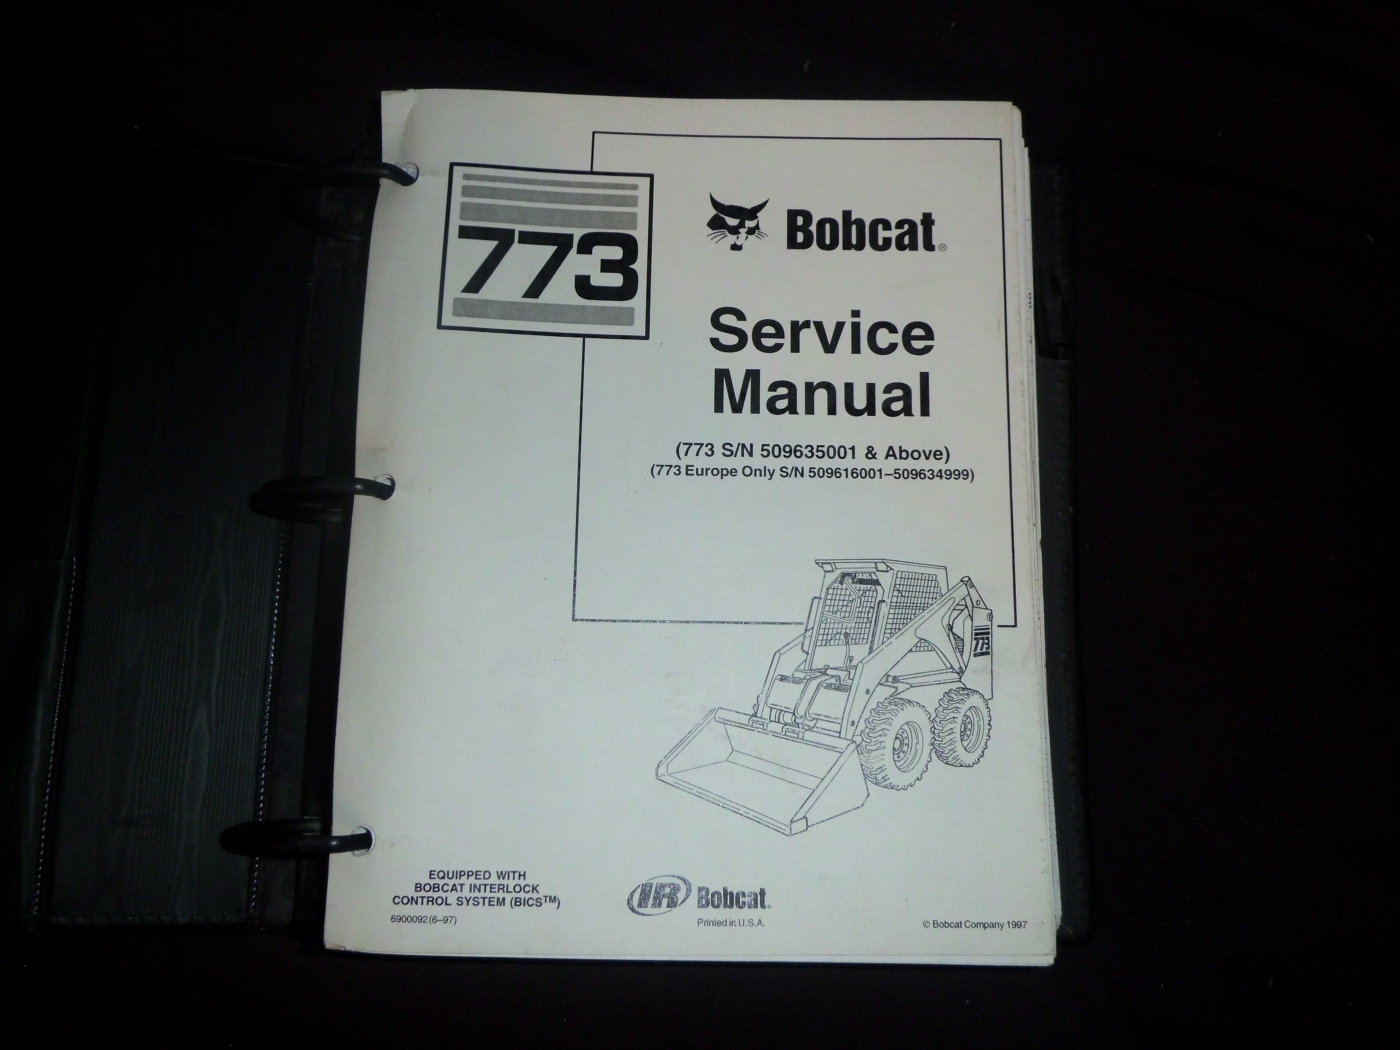 bobcat wiring diagram manual bobcat image bobcat 773 wiring diagram bobcat wiring diagrams cars on bobcat 753 wiring diagram manual